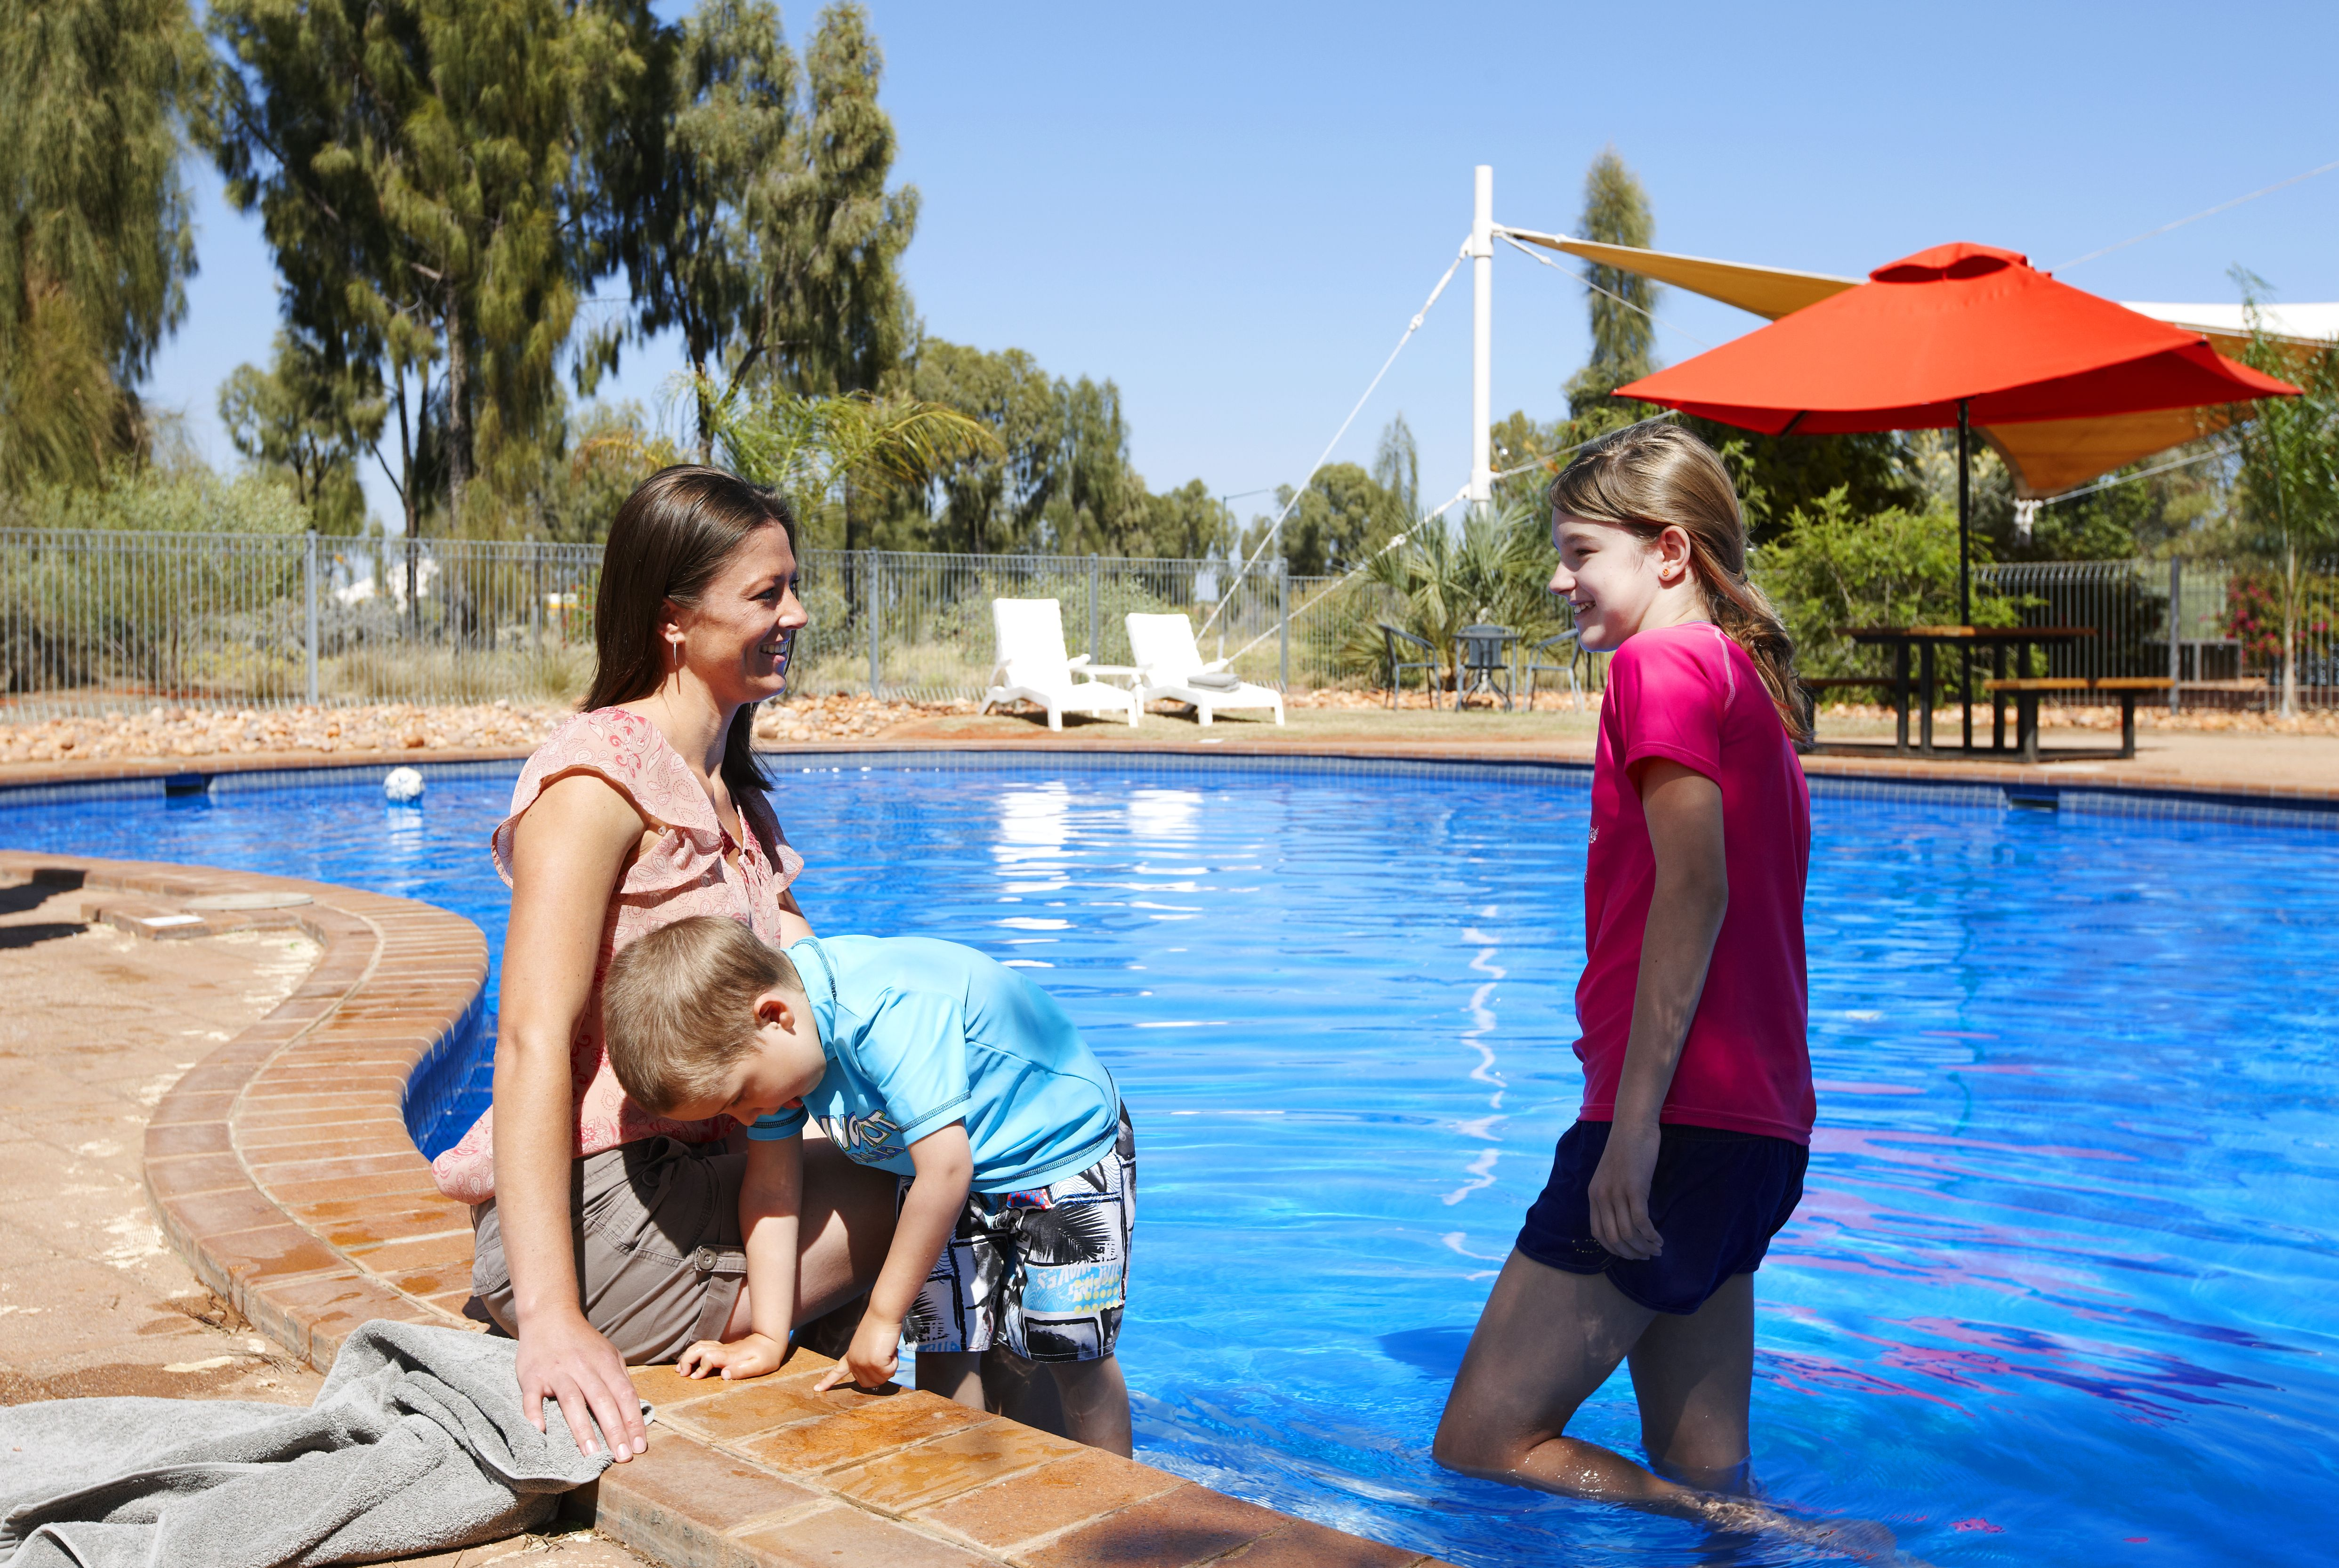 A family at the pool